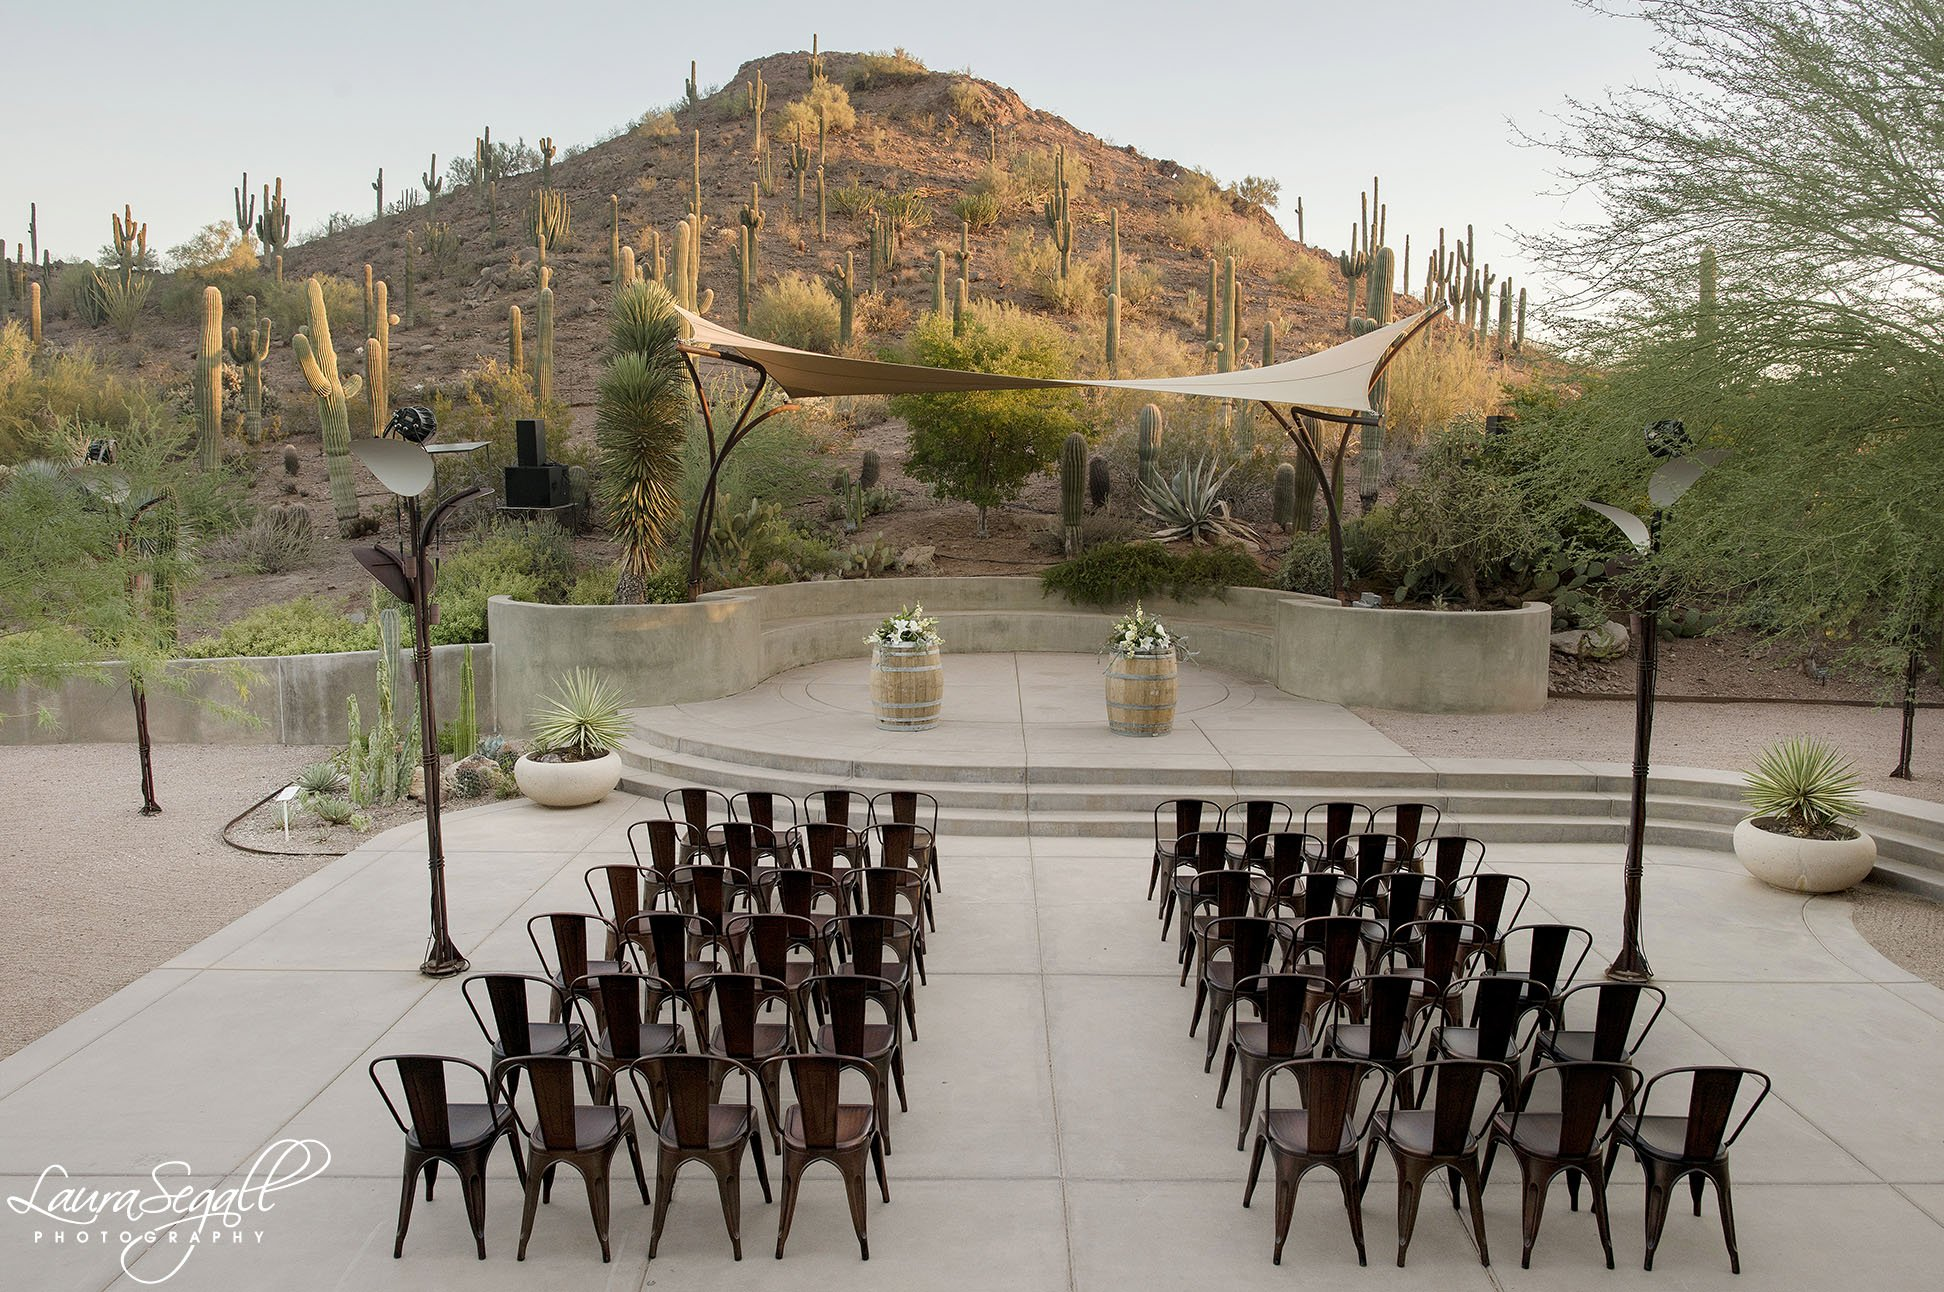 Ullman Terrace wedding venue